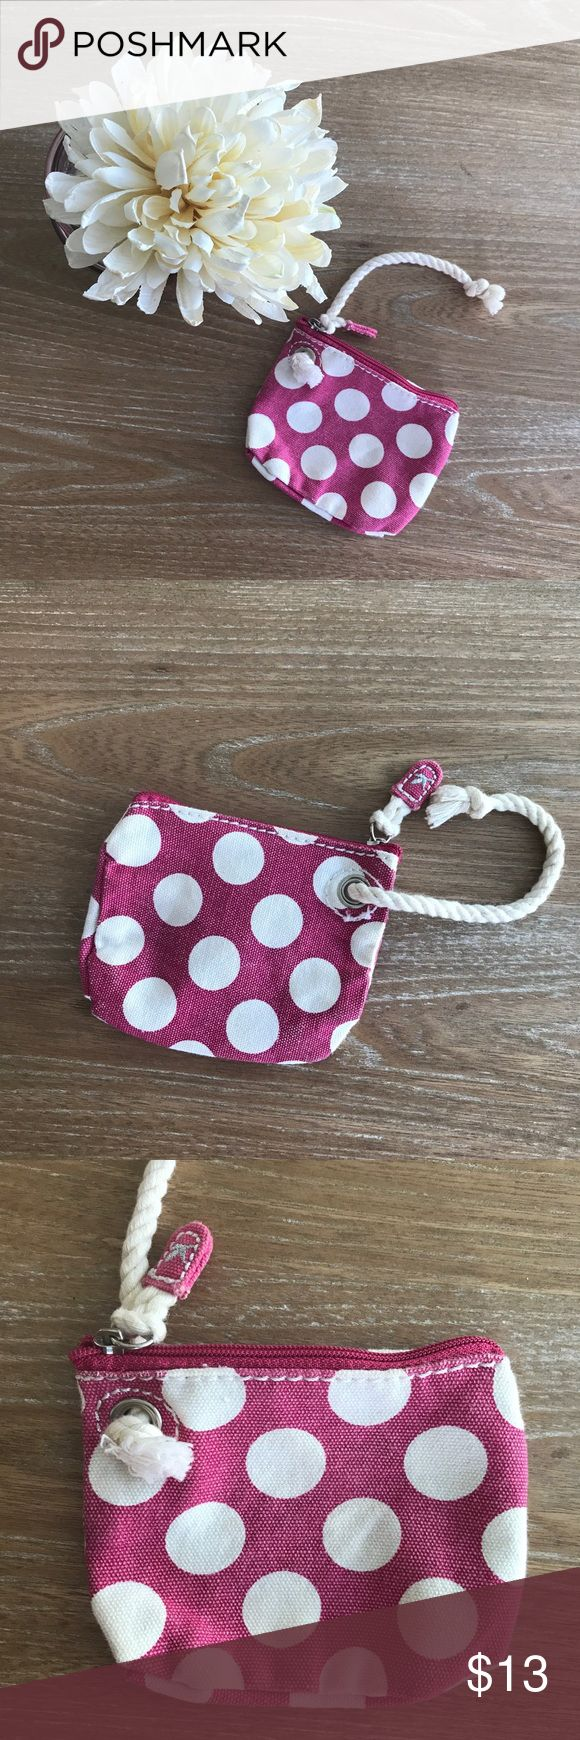 AMERICAN EAGLE POLKA DOTS COIN PURSE 💗Condition: Like New, No flaws, no rips, holes or stains. 💗Smoke free home/Pet hair free 💗No trades, No returns. No modeling  💗 I don't drop prices, make me offers!  💗Shipping next day. Beautiful package! 💗ALL ITEMS ARE OWNED BY ME. NOT FROM THRIFT STORES 💗All transactions video recorded to ensure quality.  💗Ask all questions before buying American Eagle Outfitters Bags Mini Bags